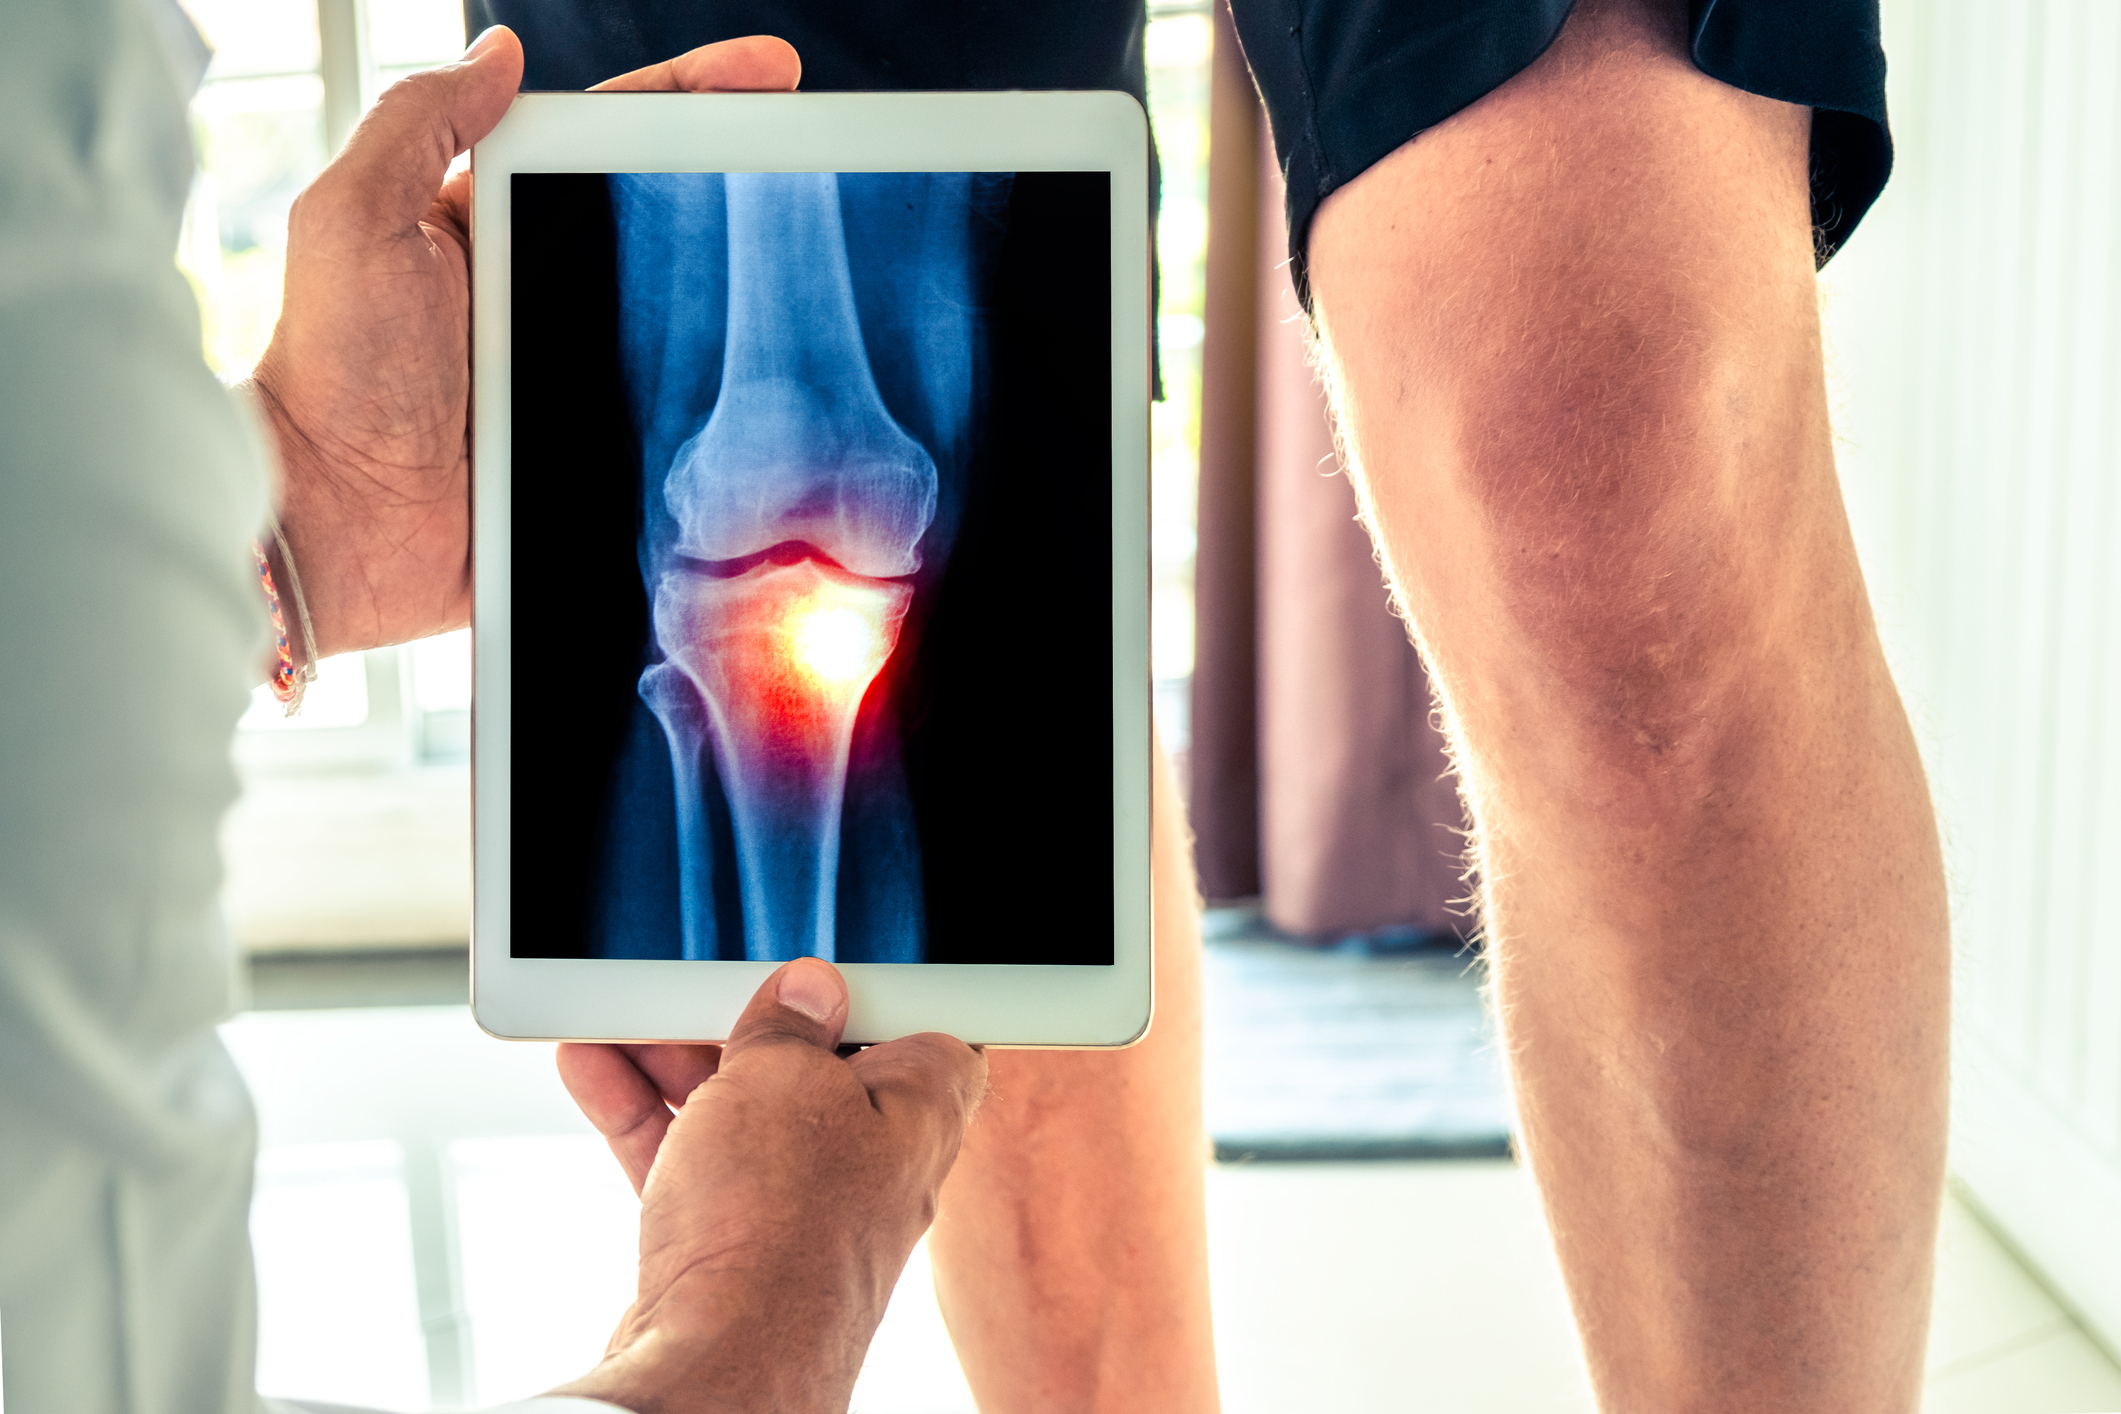 How effective is garlic for osteoarthritis knee pain?